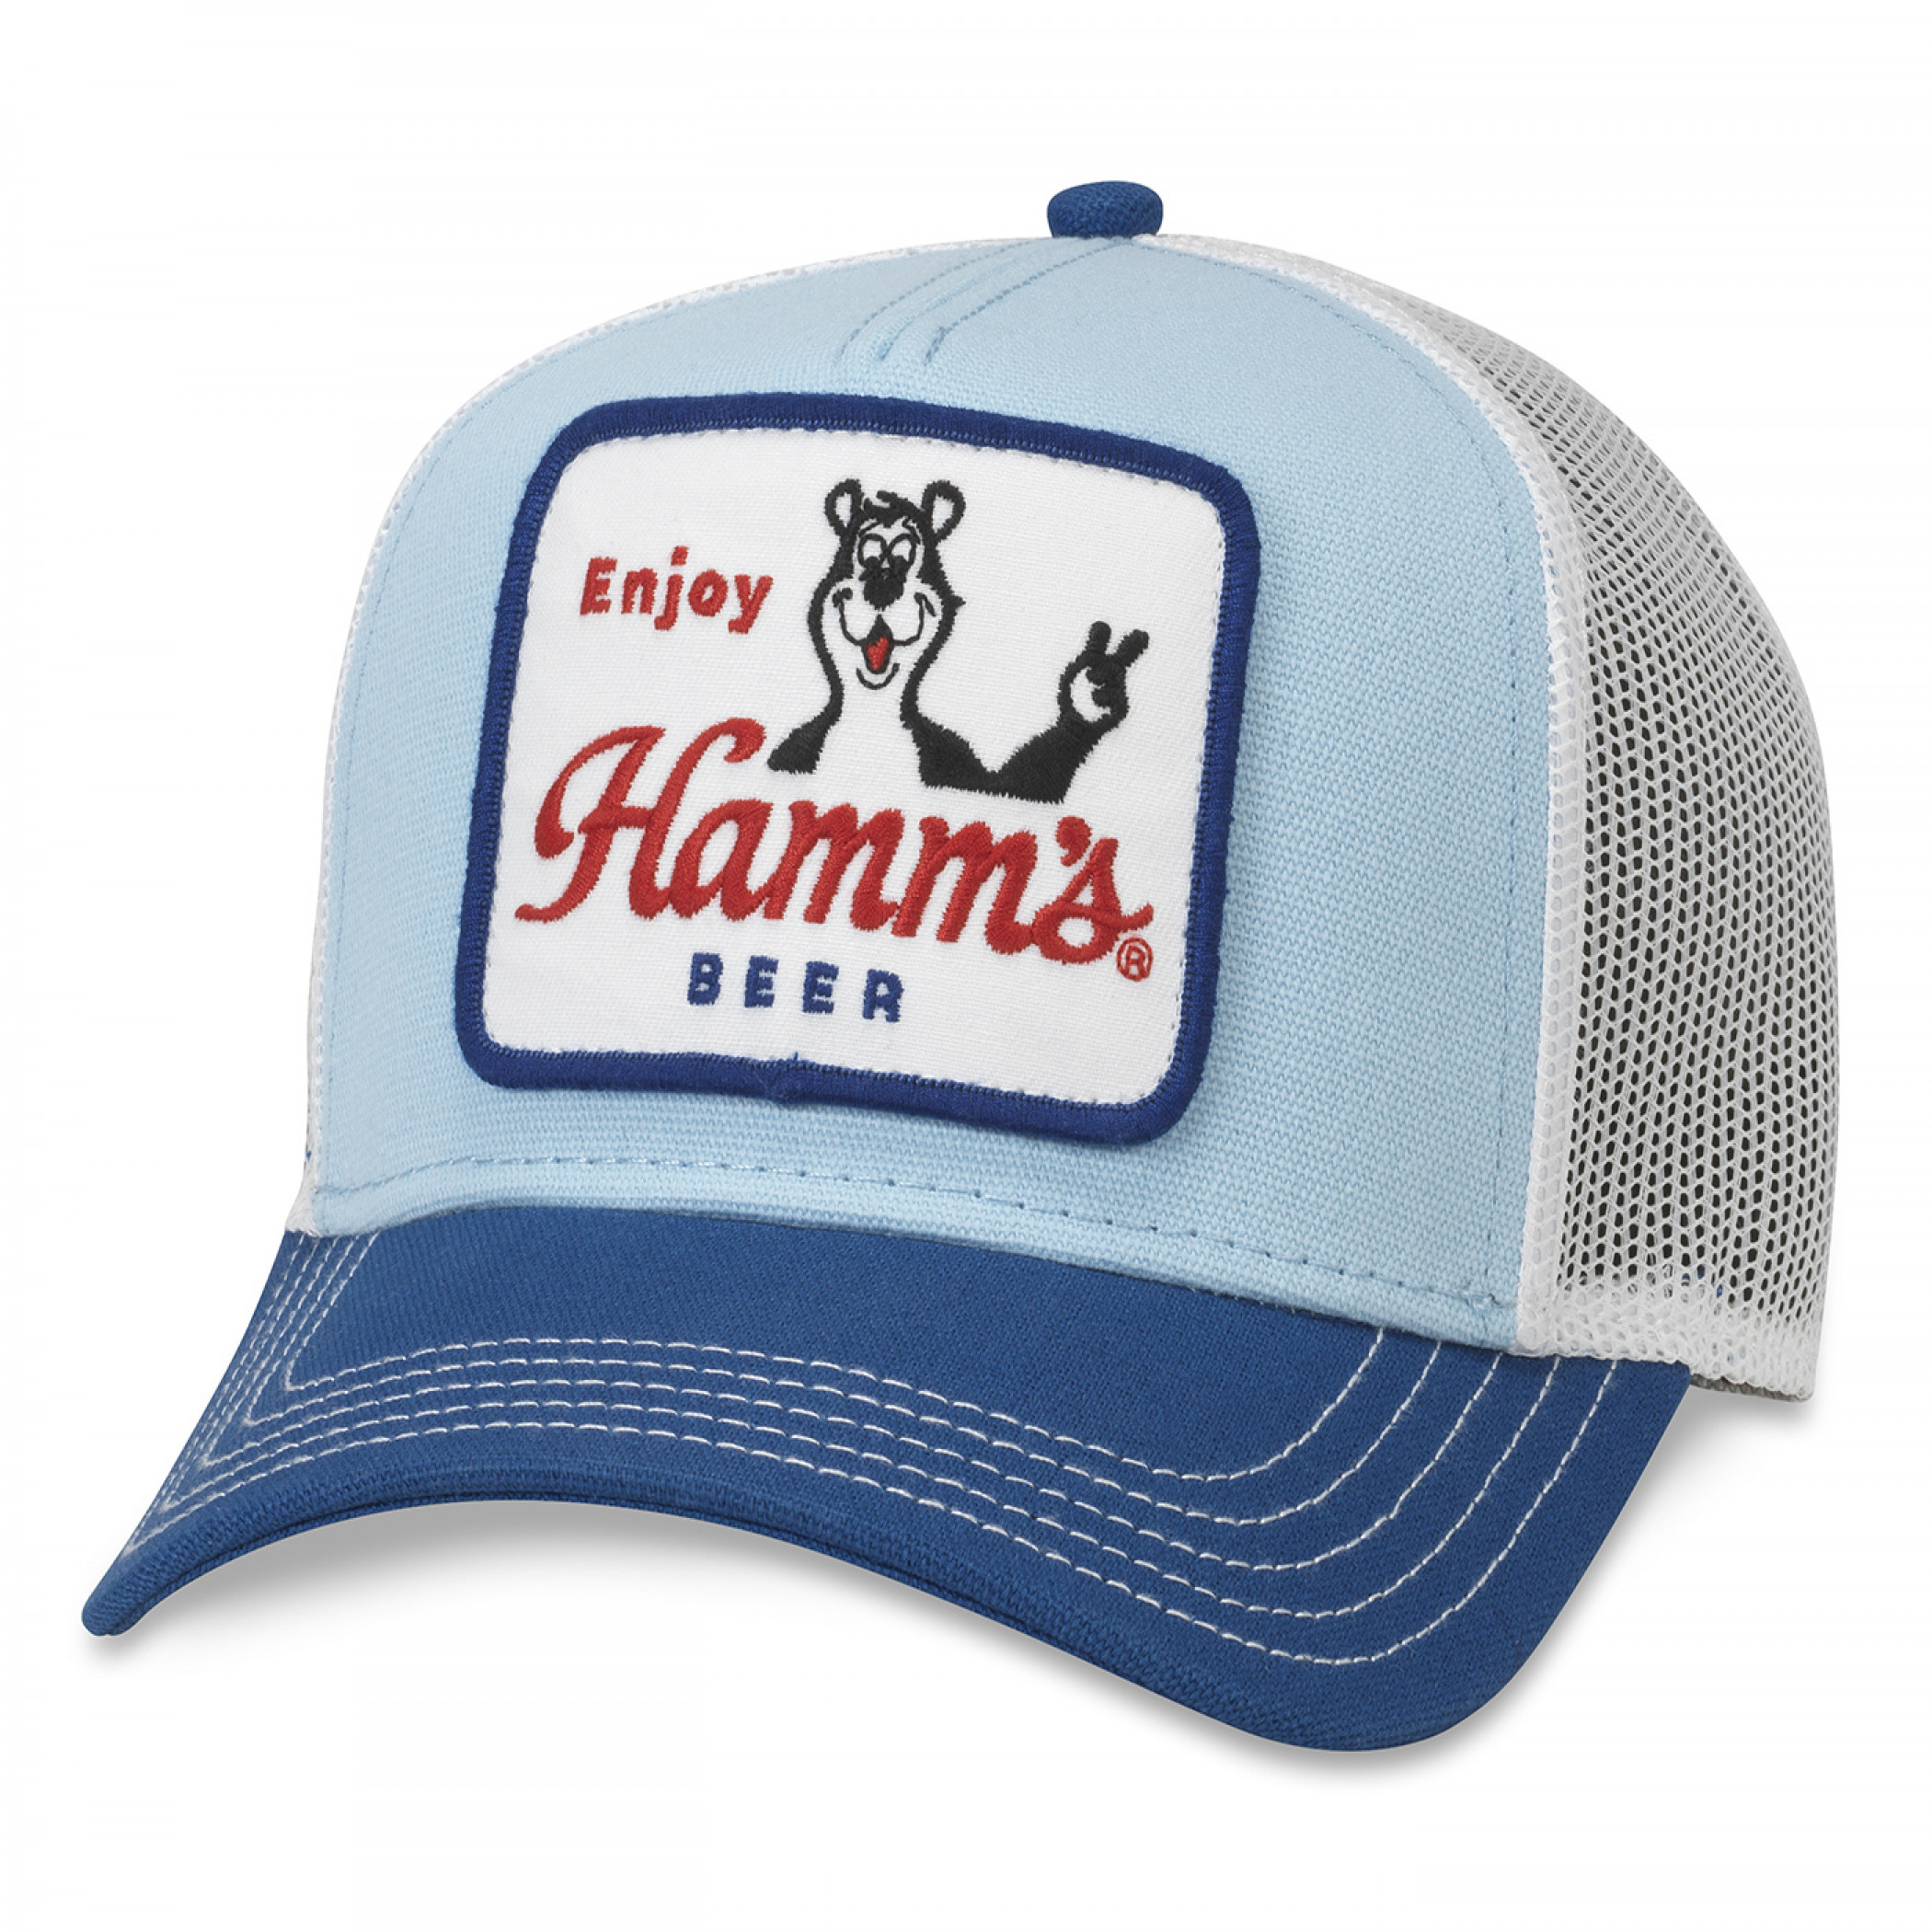 Hamm's Bear Patch Trucker Hat